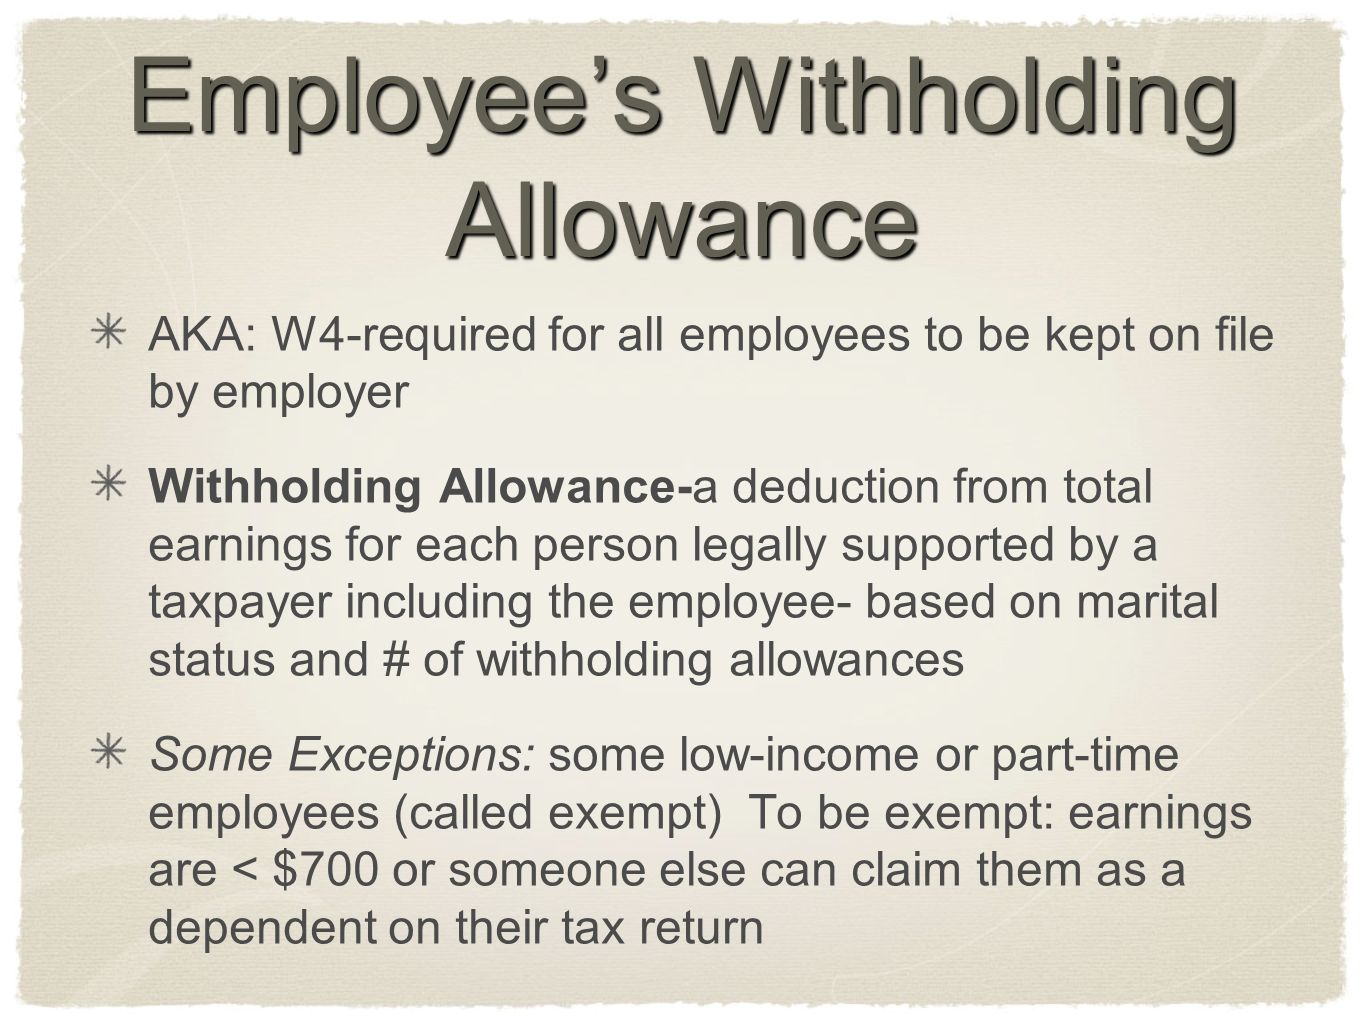 Employee's Withholding Allowance